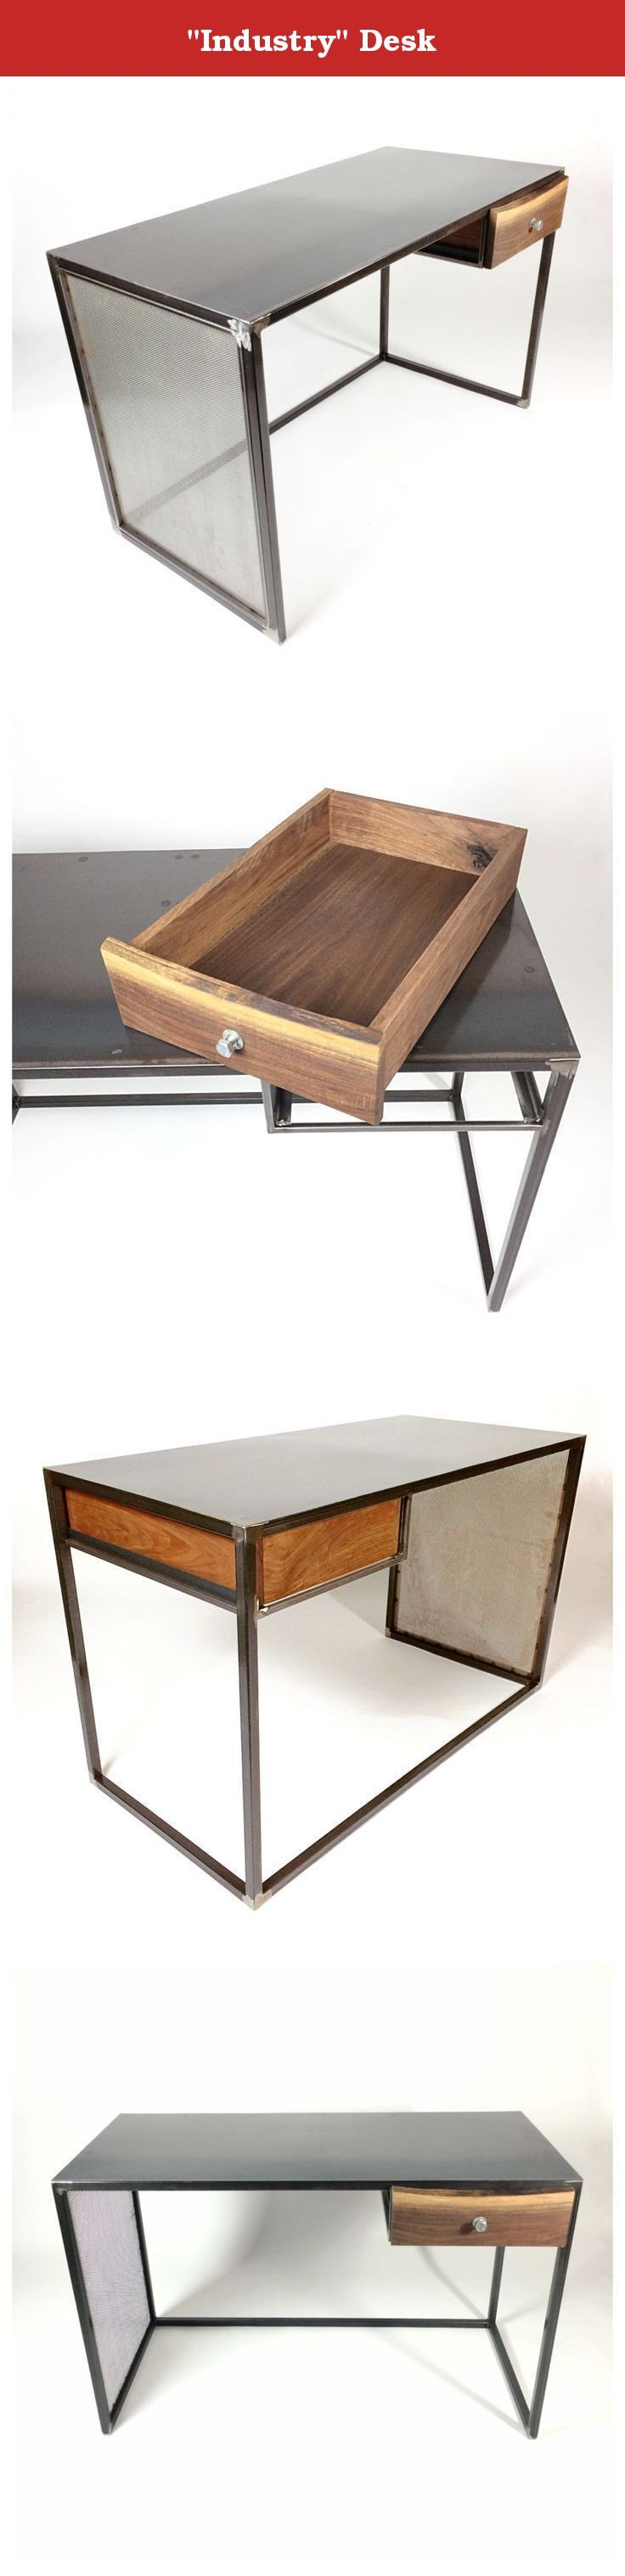 """""""Industry"""" Desk. Simple Bold Design and Zero Mechanics.. This Sums Up the Industry Desk. Welded Framework is 1"""" Tube Carbon Steel. Side Insert of Perforated Sheet Metal in a 1/2"""" Tube Steel Frame. Top Surface Smooth Hot Rolled Sheet Steel Hand Formed to Fit. A Single Drawer is made Completely of American Black Walnut and Features High Strength Joinery. Face Board Boasts a Live Edge and a 3/4"""" Bolt Handle. The Walnut is Conditioned with a Natural Teak Oil and the Lower Corner Rails are…"""